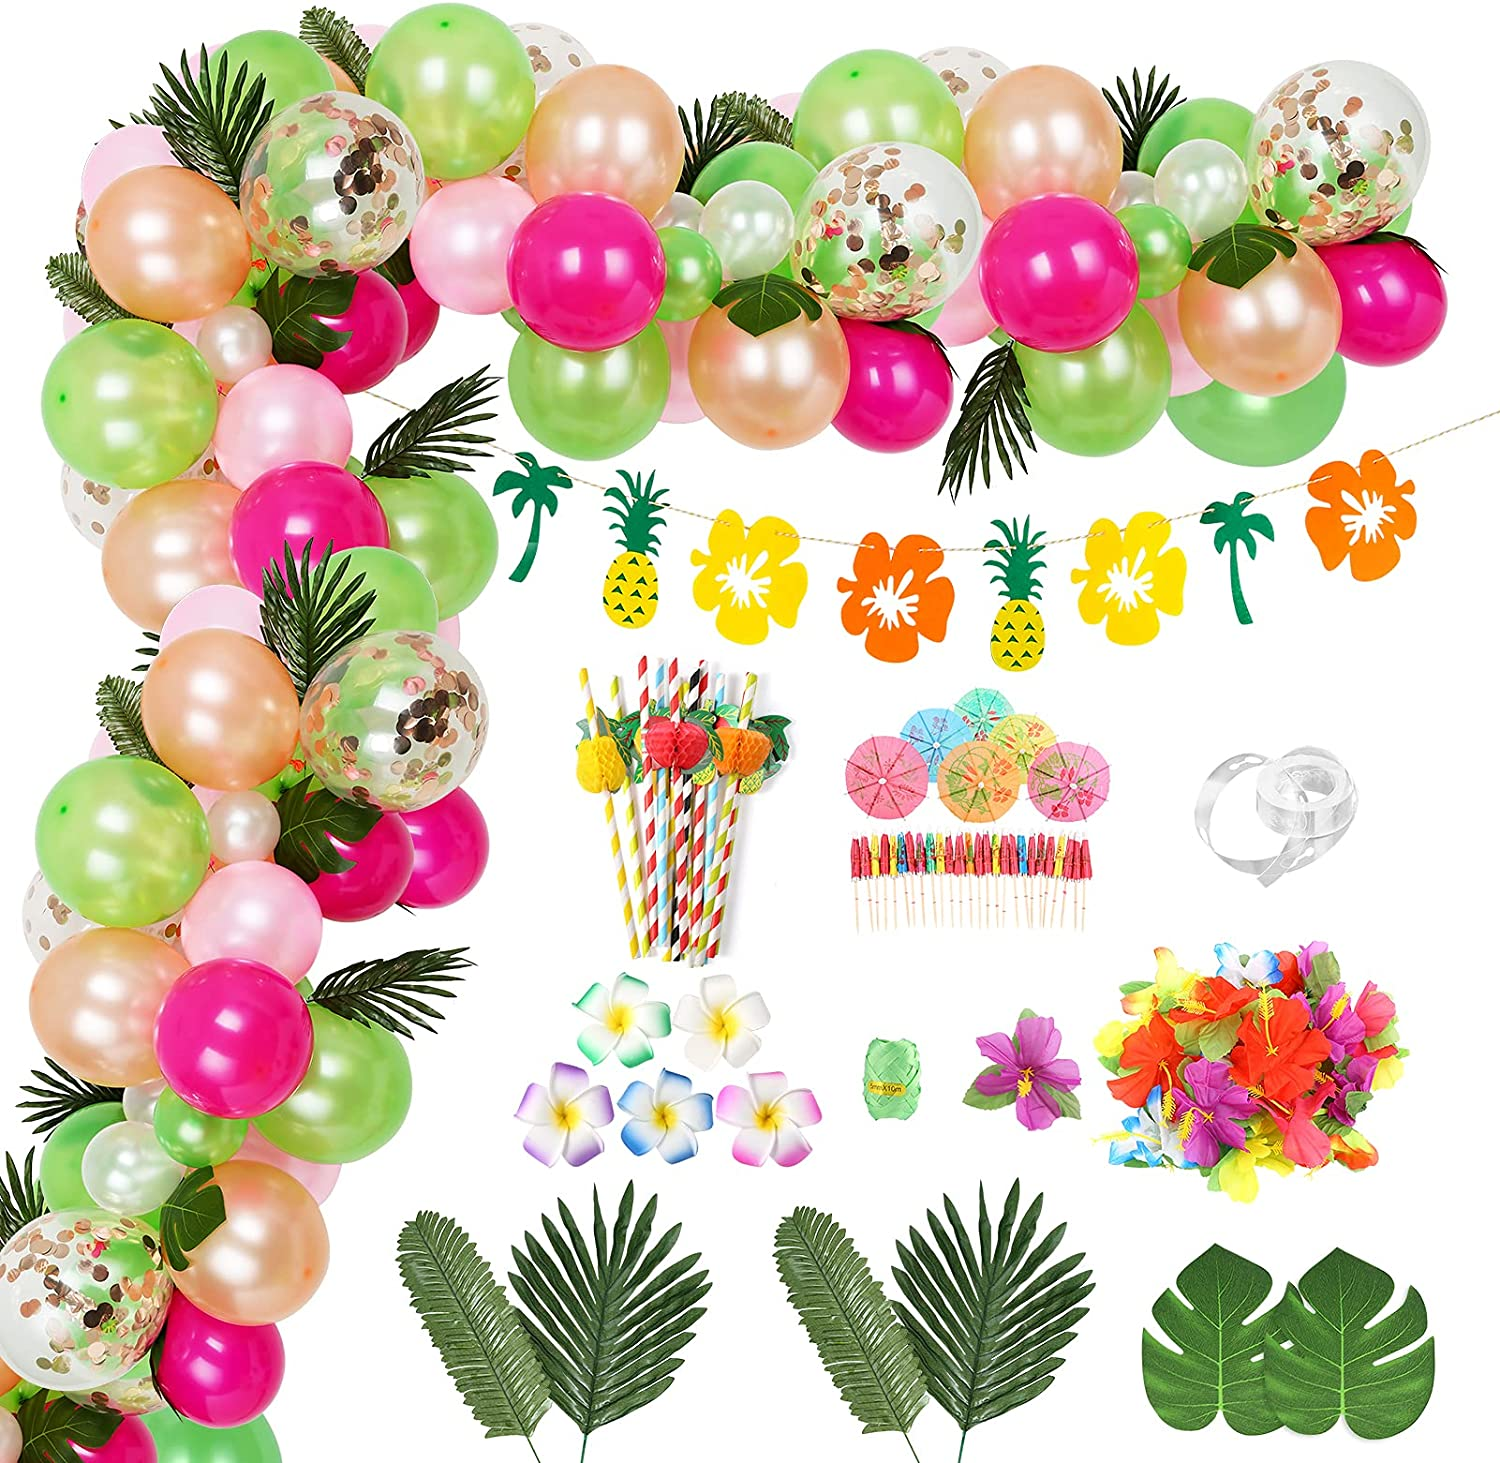 Auihiay 173 Pieces Hawaiian Tropical Party Decor Set Include Luau Balloon Garland, Jungle Leaf and Pineapple Banner for Summer Theme Party Birthday Party Baby Shower Decorations Photography Backdrop